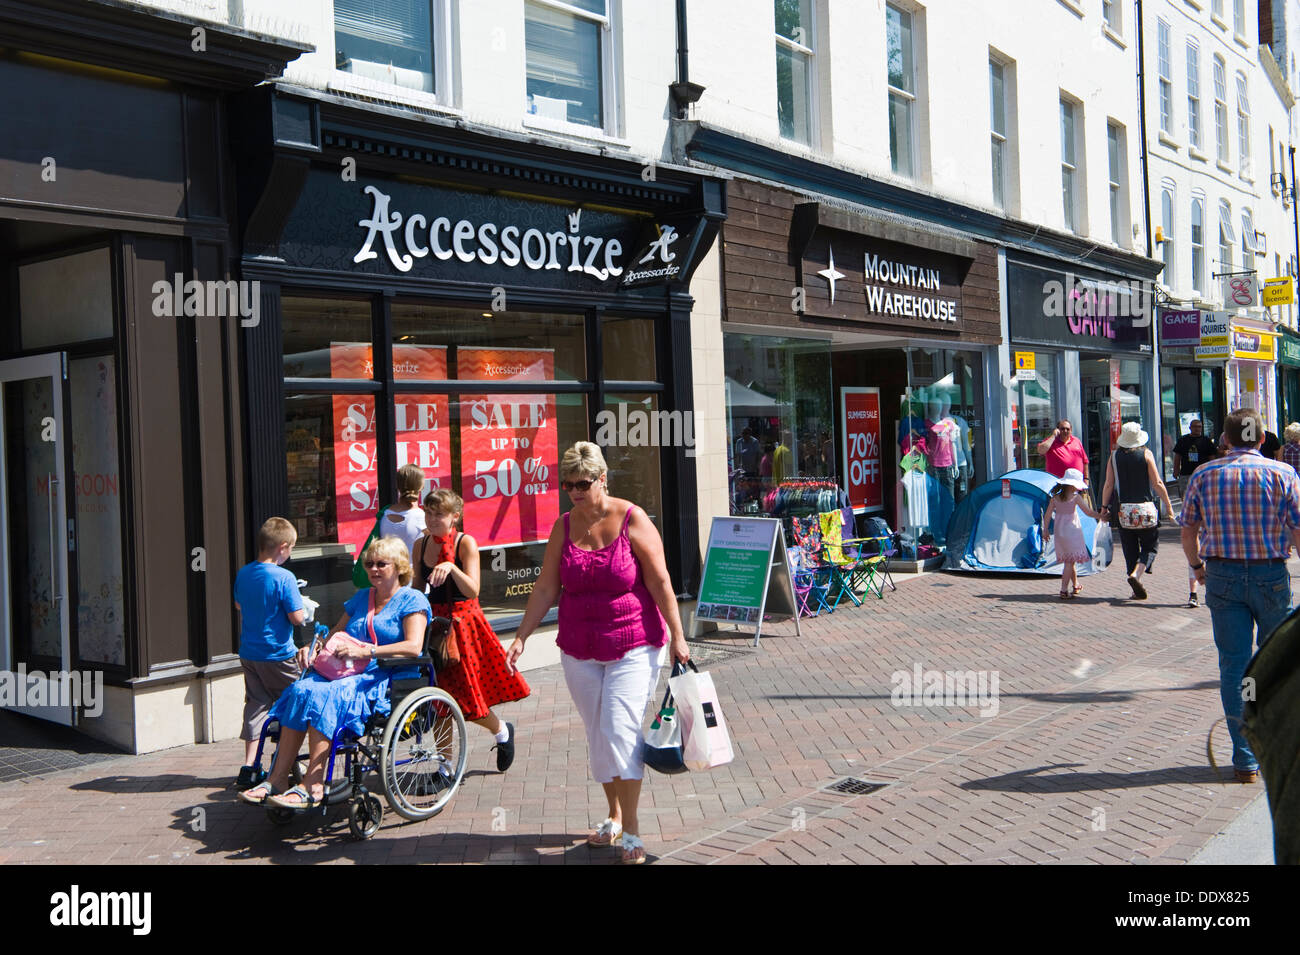 High street busy with shoppers at High Town in Hereford Herefordshire England UK - Stock Image